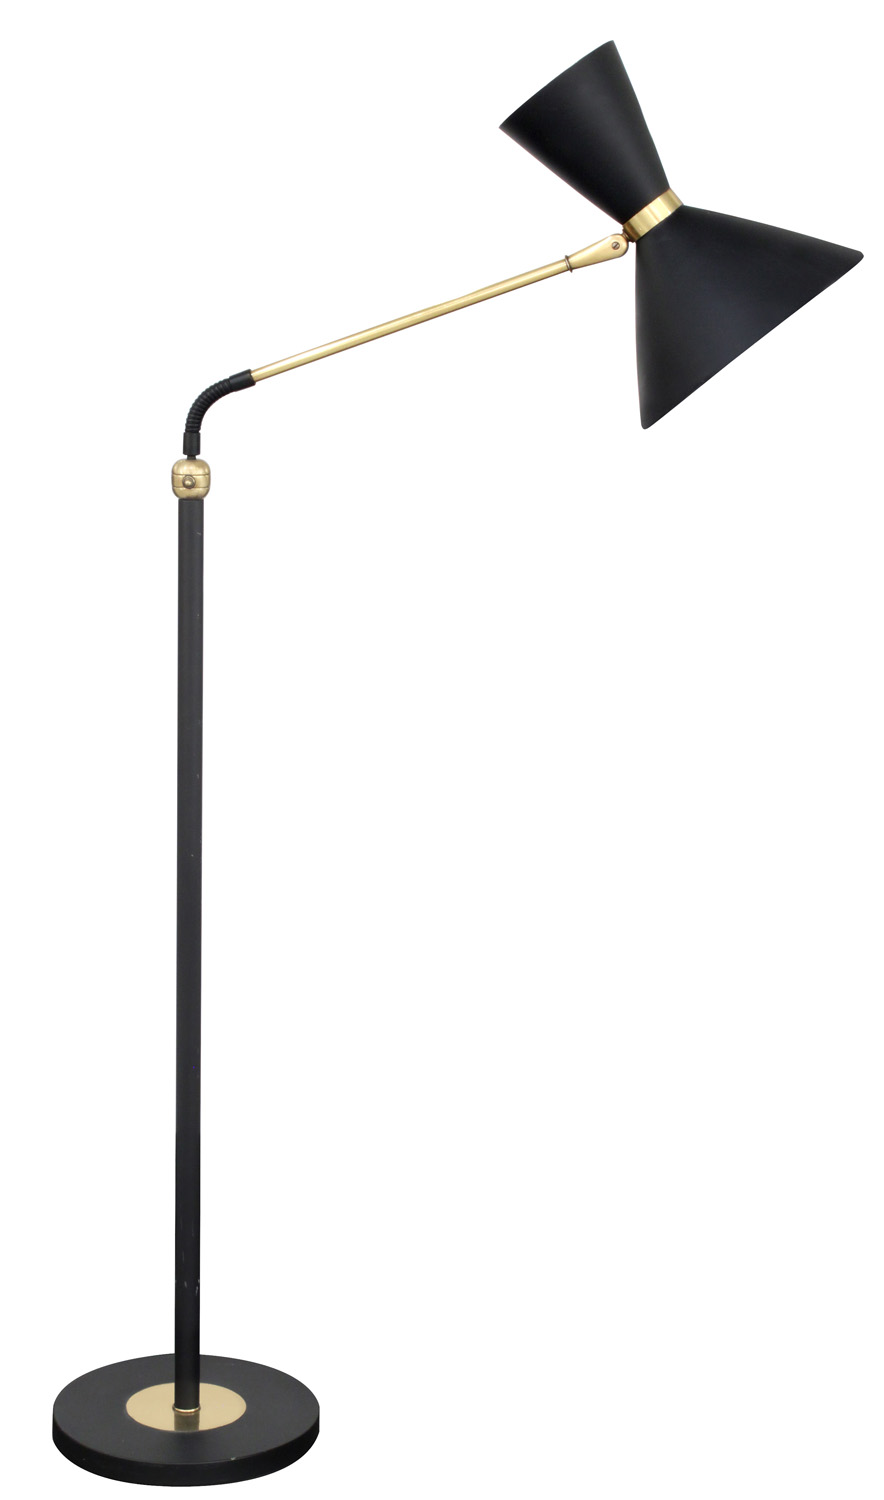 Ital 75 black shde up+down bulbs floorlamp164 detail1 hires.jpg